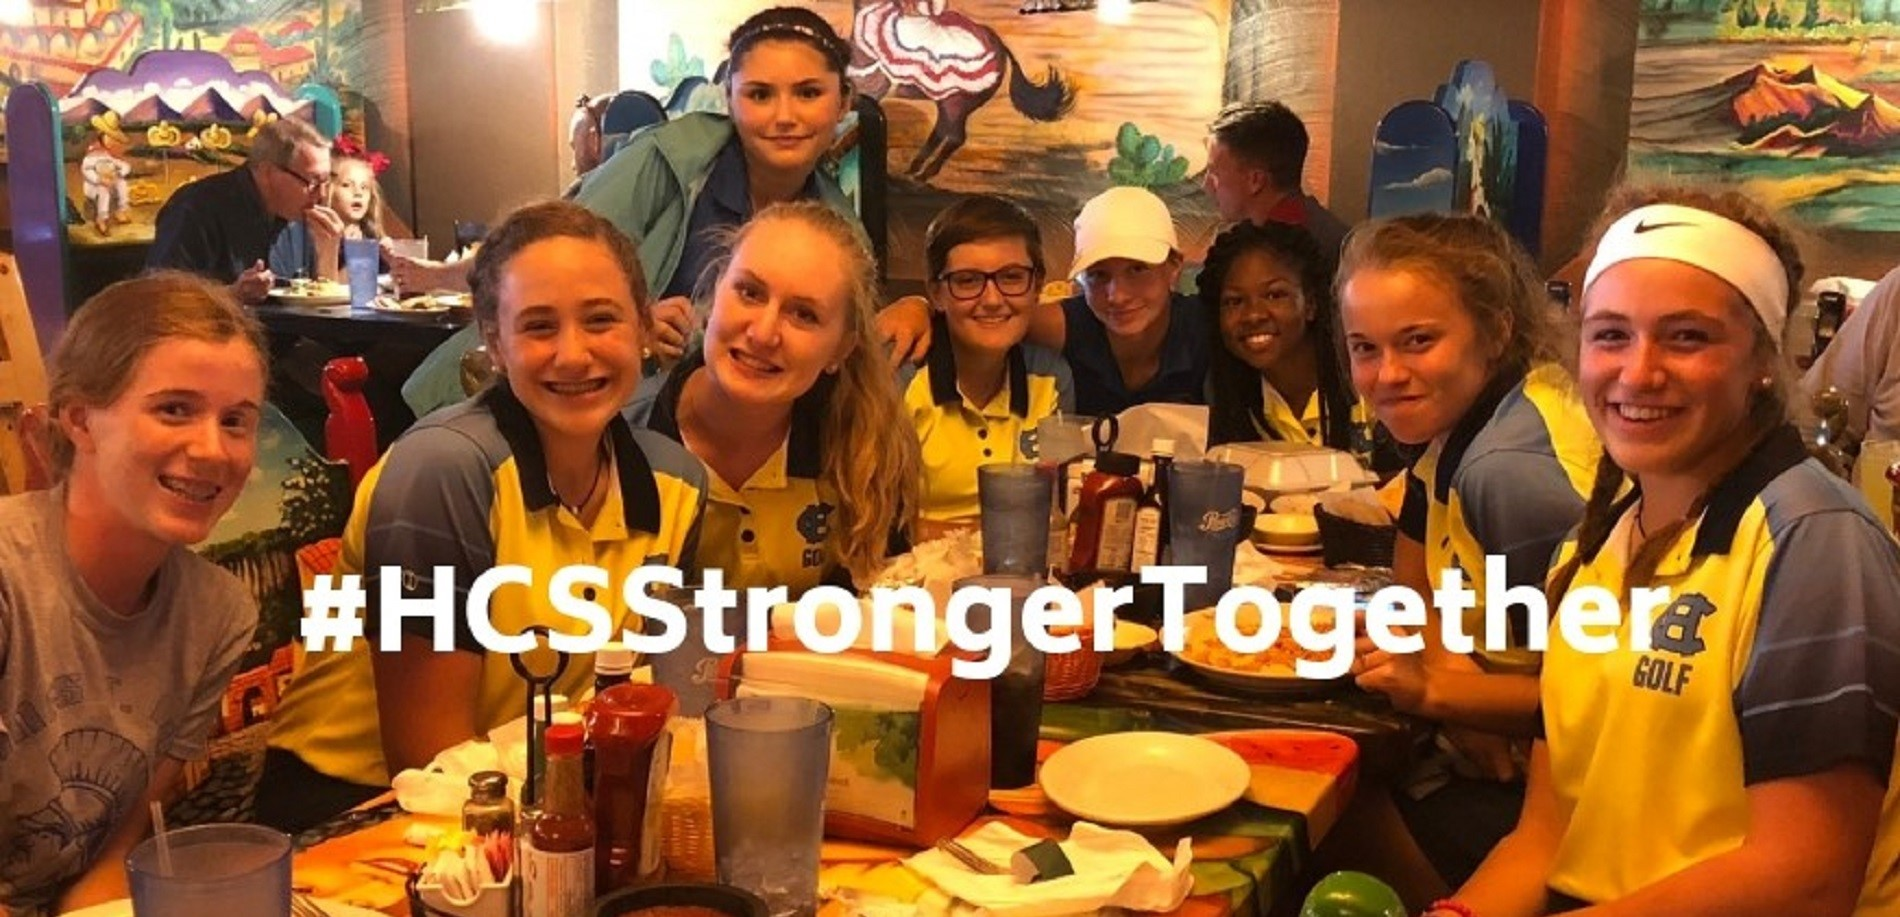 The NHHS golf team and the CHHS golf team enjoyed a meal together after earning first and second place, respectively, in the regional tournament.